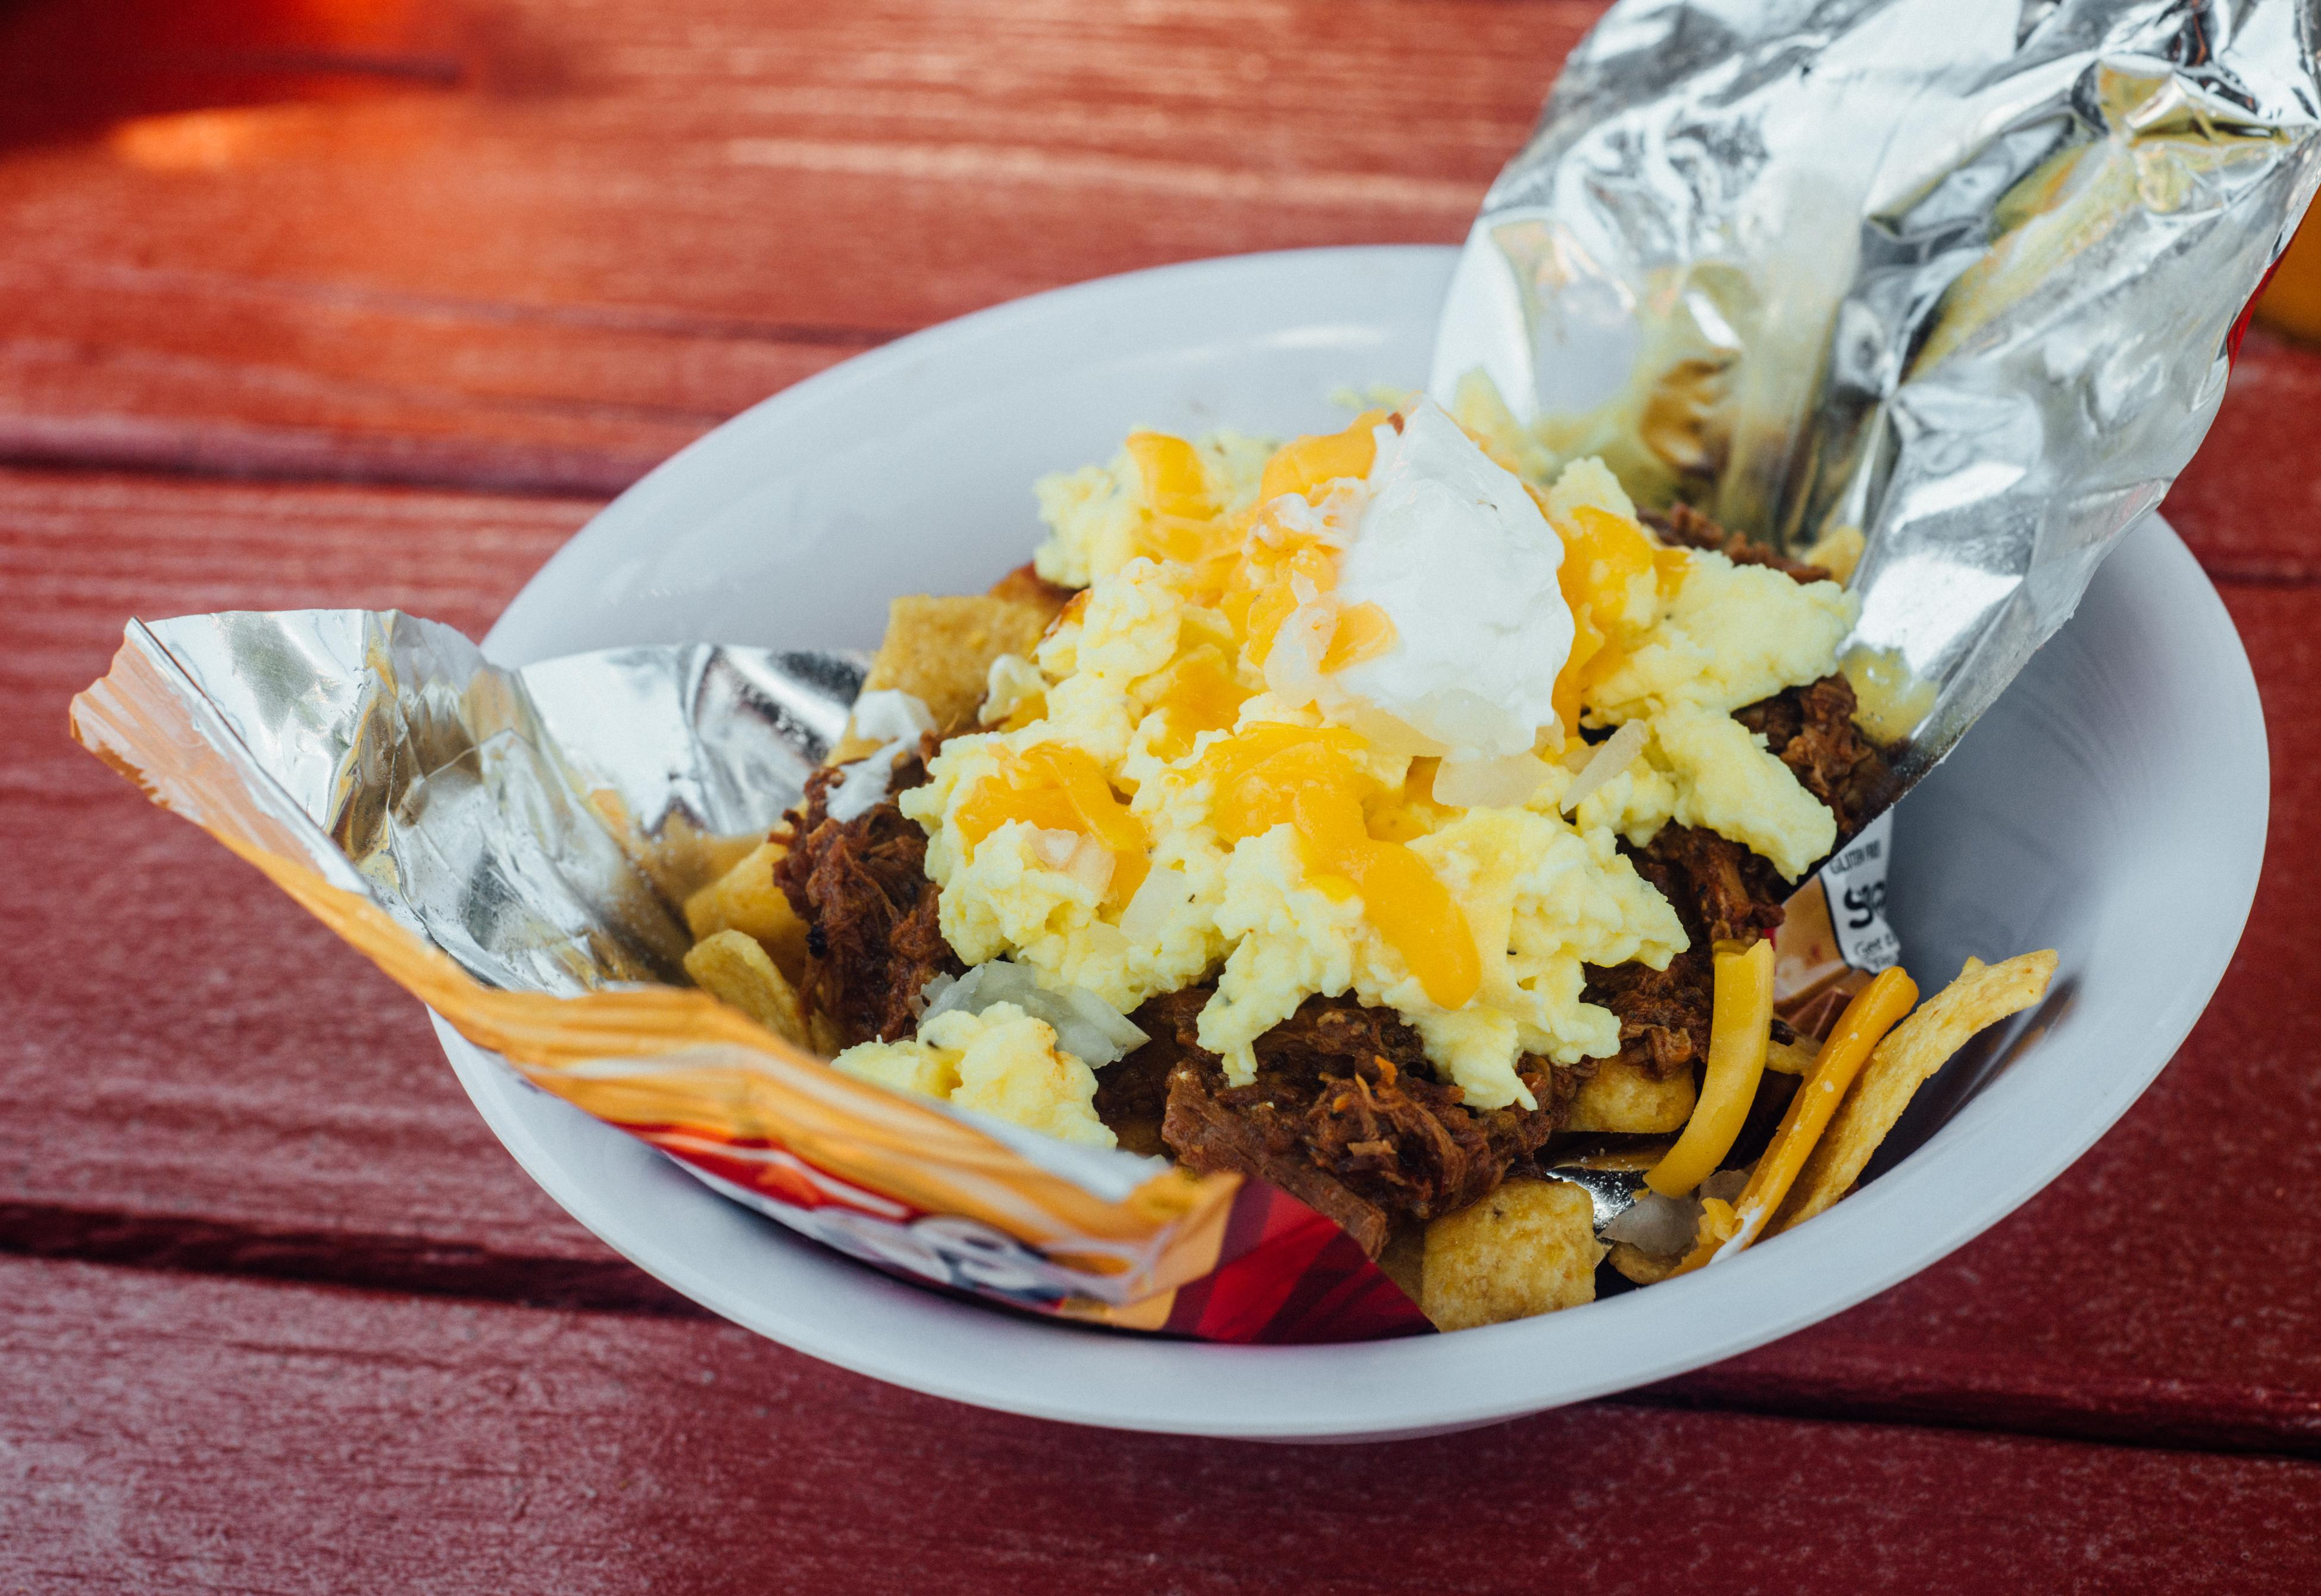 Jack's BBQ's Frito Pie with Eggs; one of their brunch offerings. Gluten-free, to boot. (Image: Audrey Kelly)